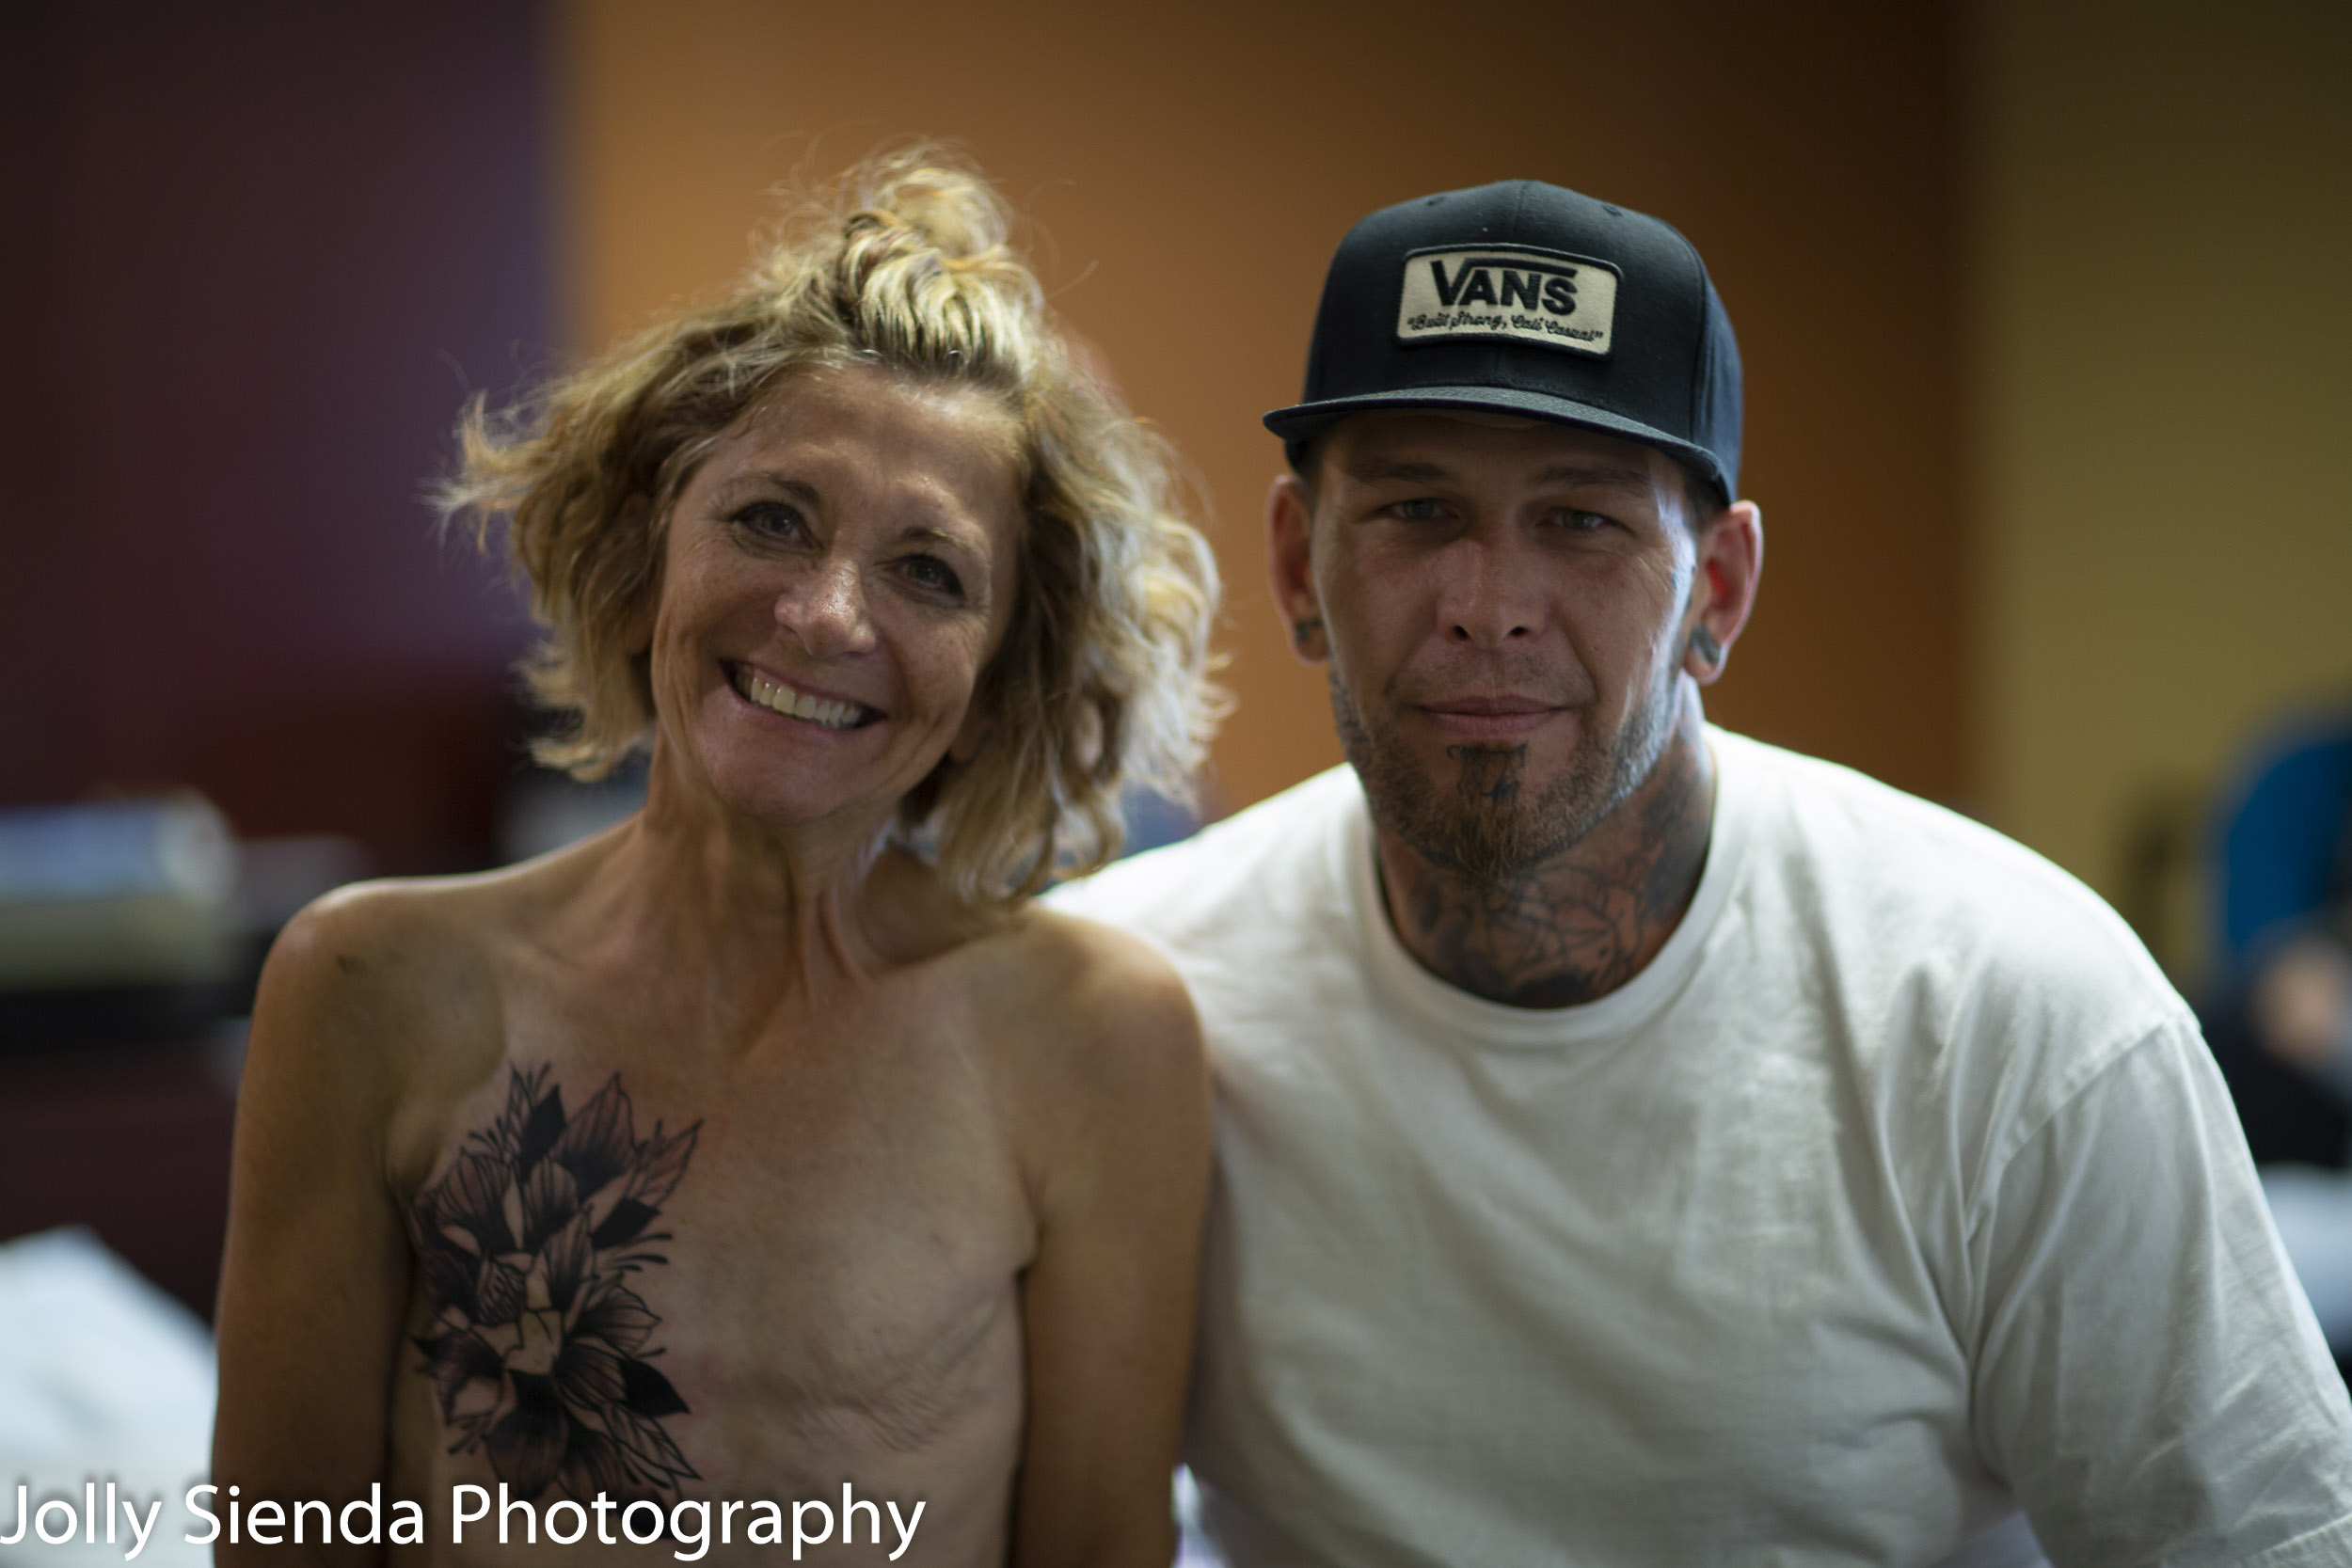 Chad Willingham, Aces N Eights Tattoo and Body Piercing